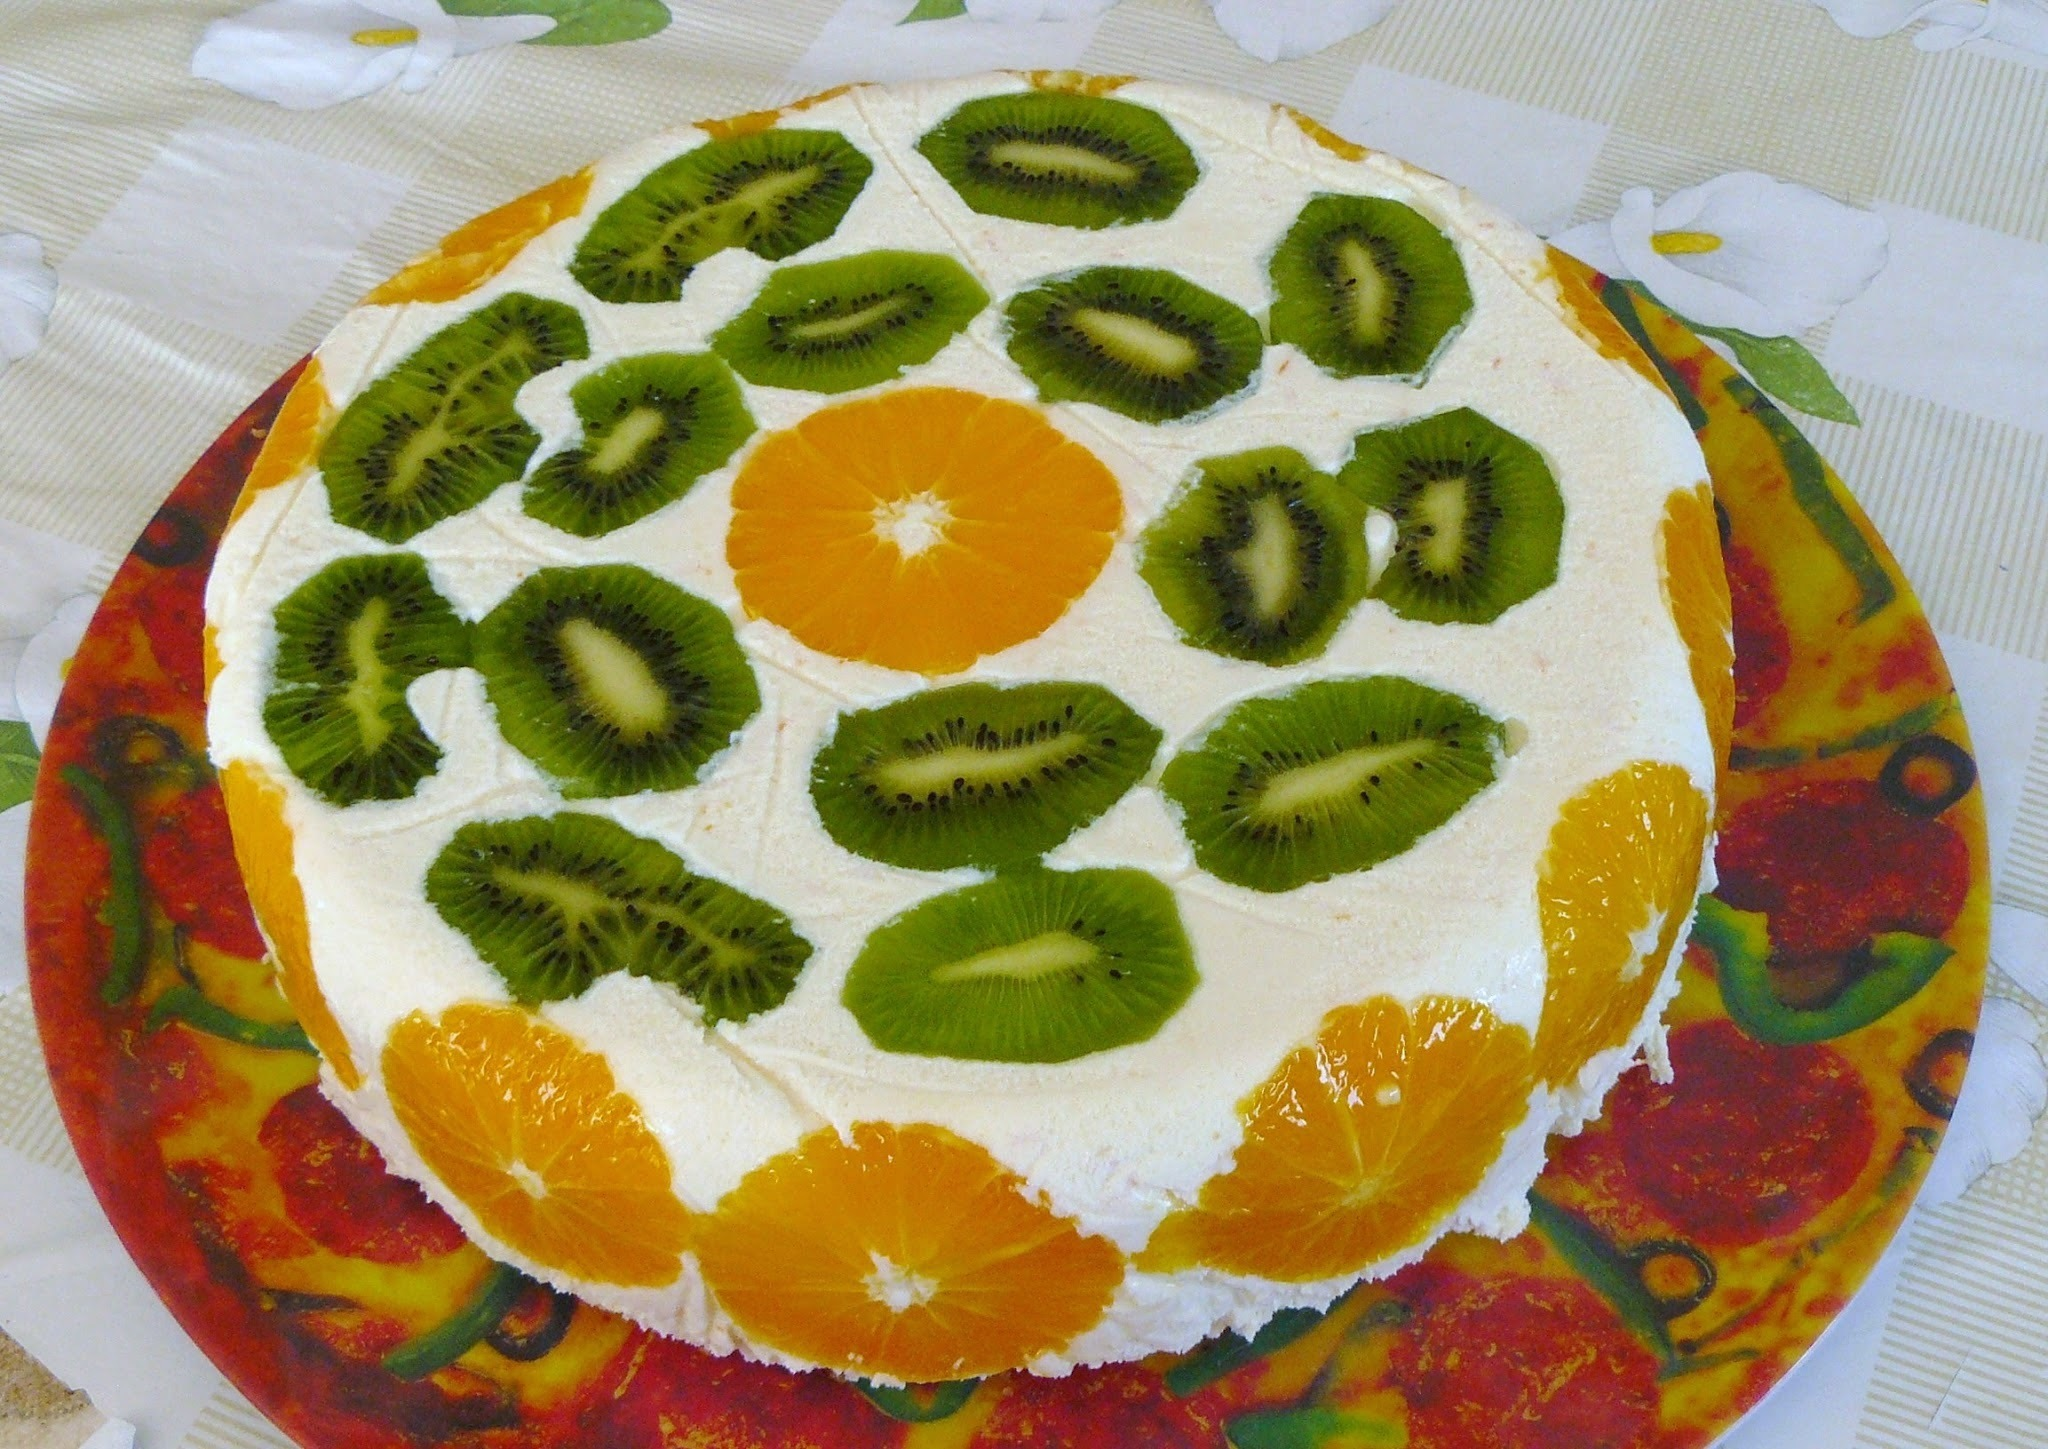 Diplomat cake with fruits